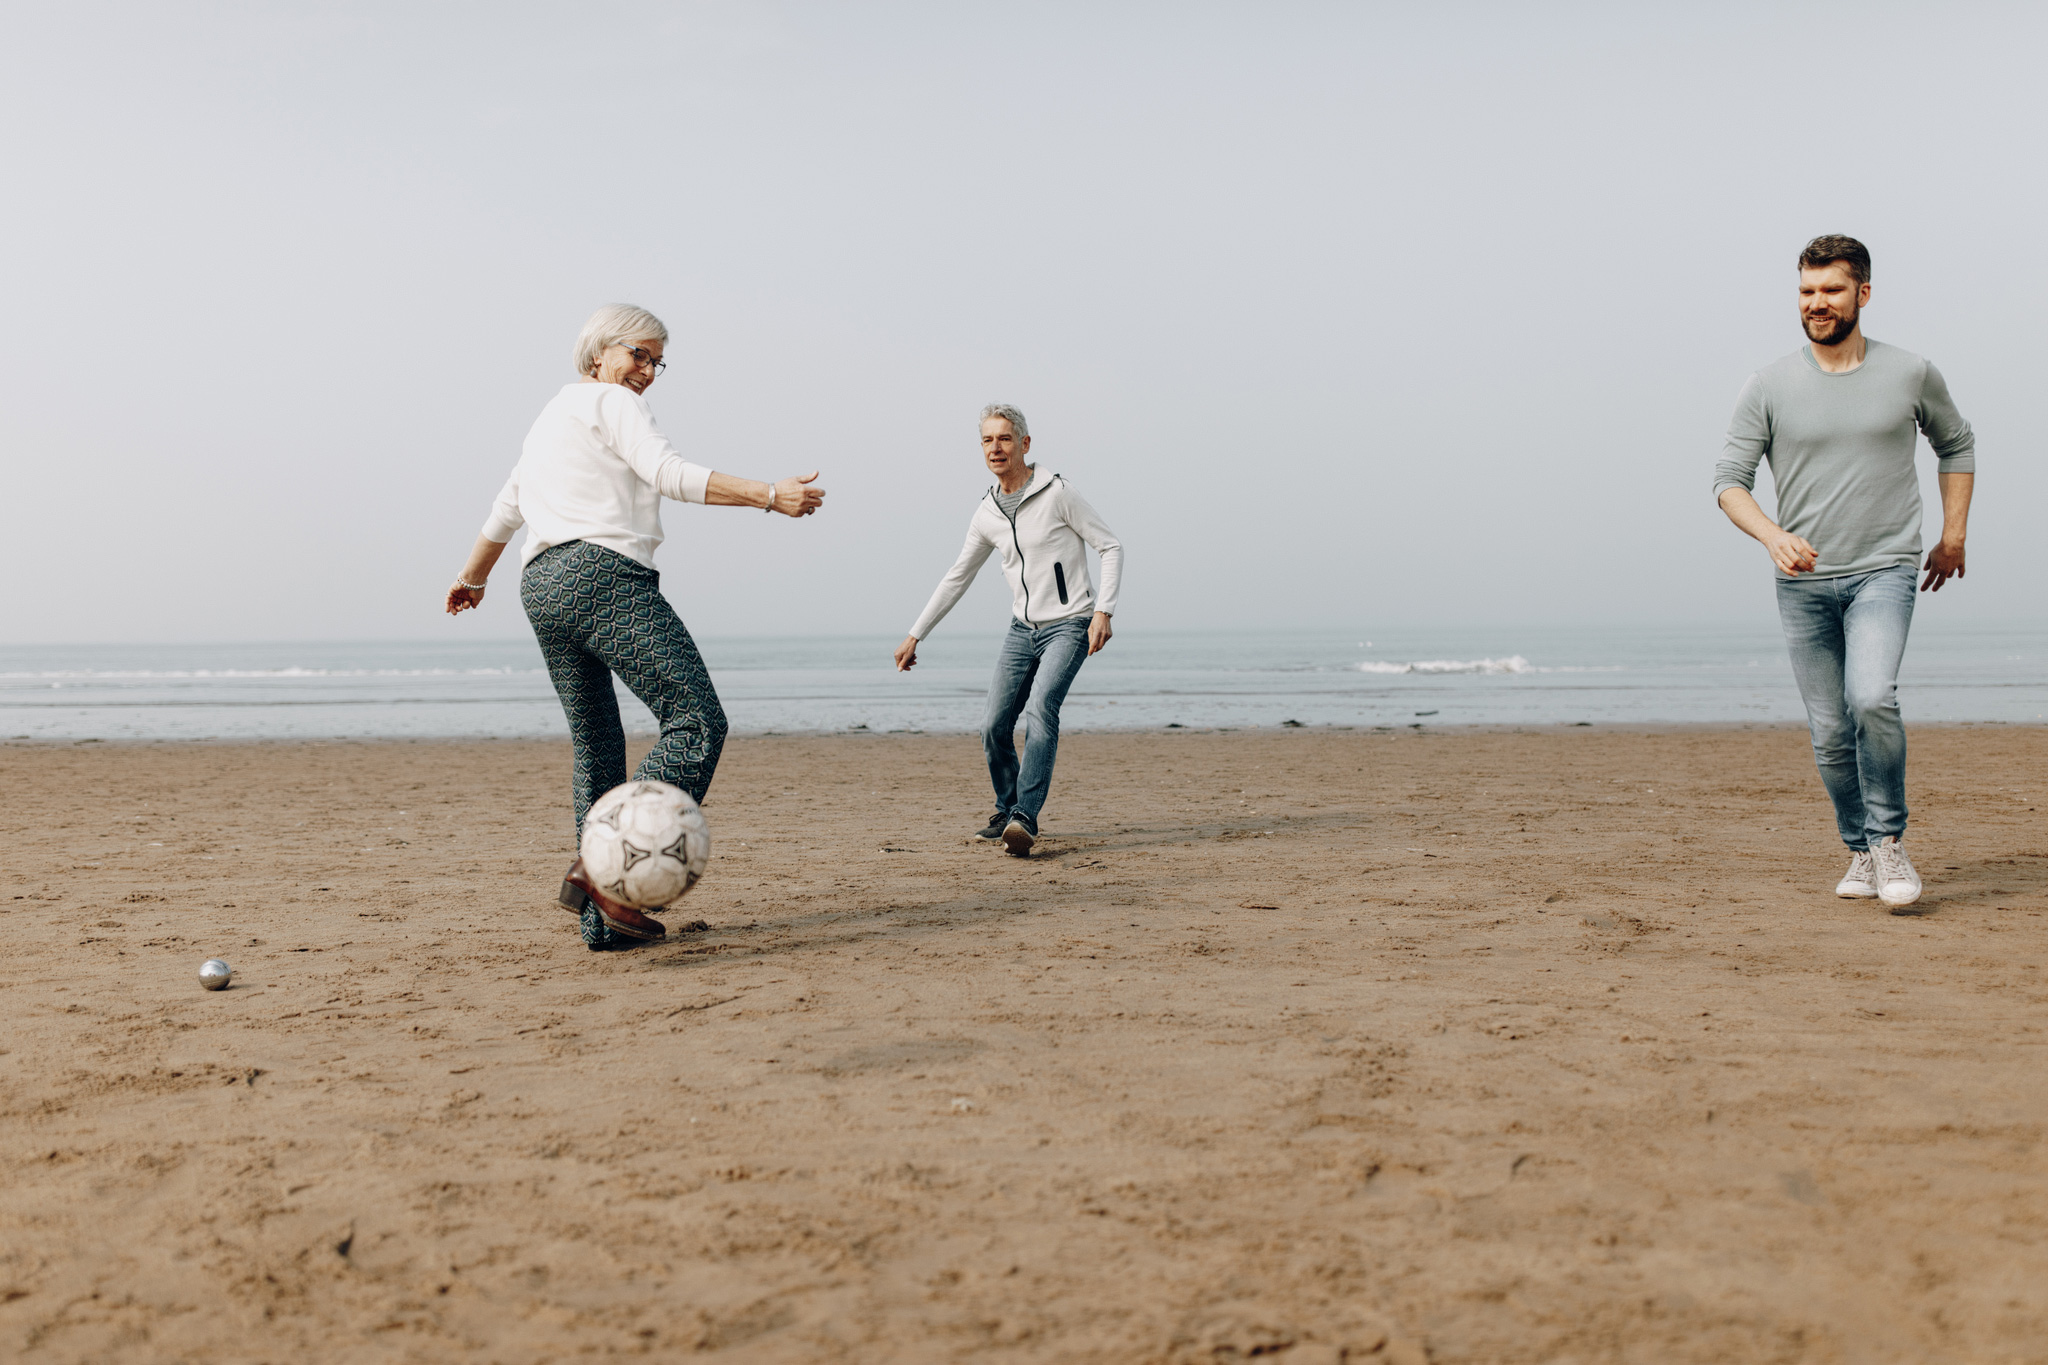 Family playing soccer at the beach